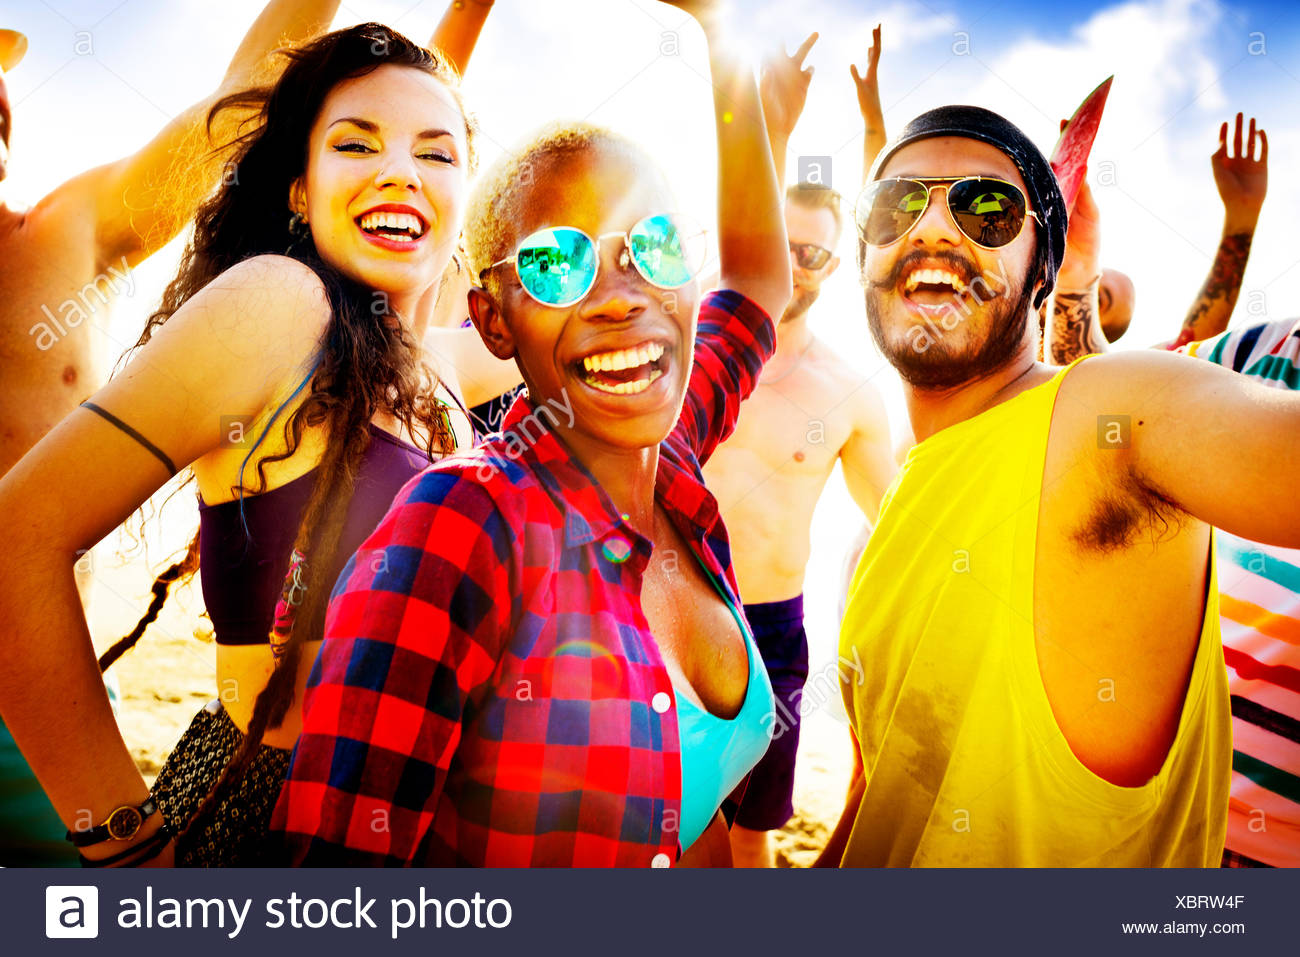 Friends Summer Beach Party Festival Concept - Stock Image